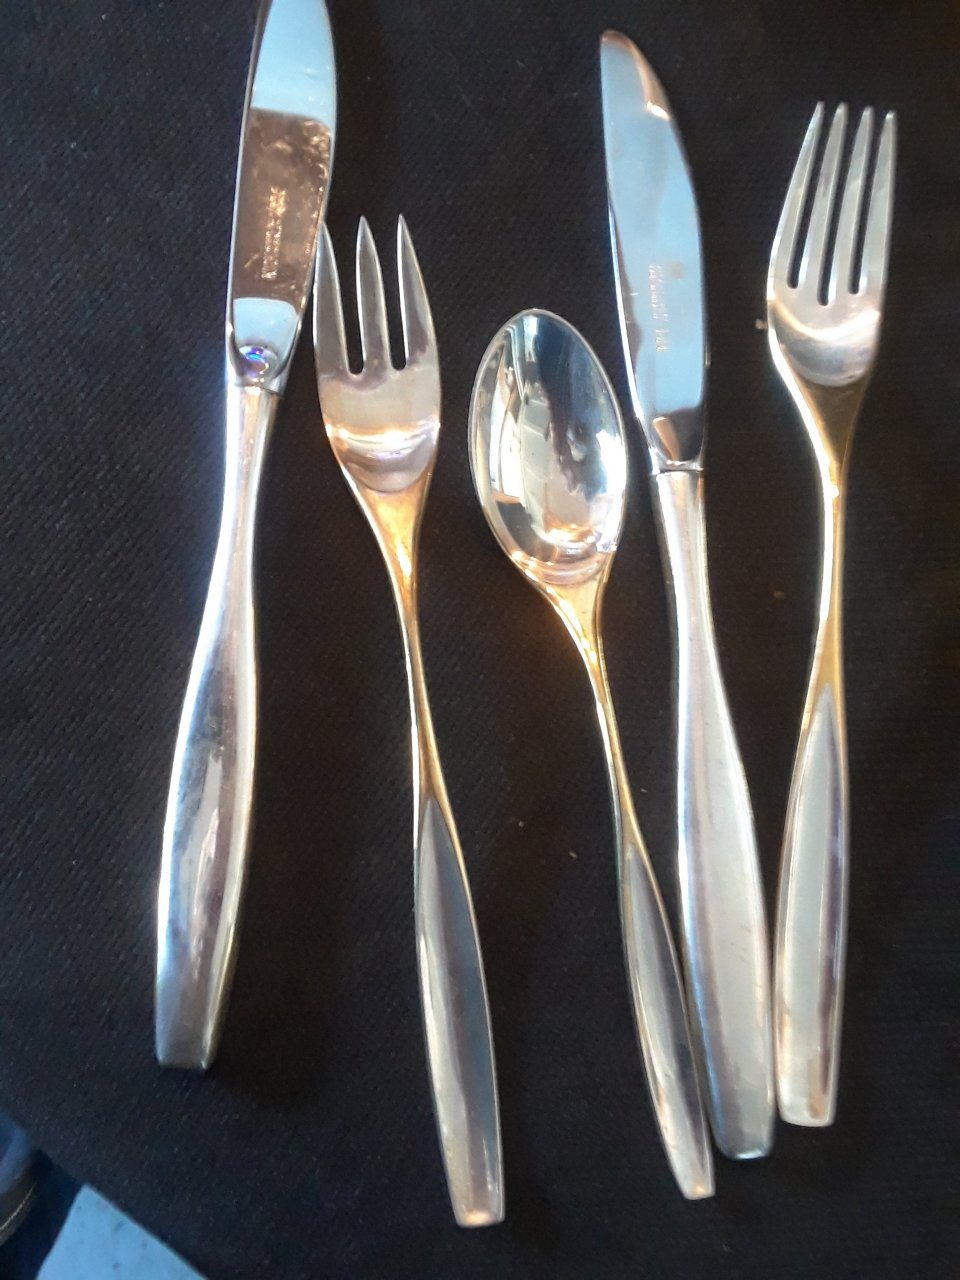 Lg spoons 24 sm spoons 10 knives 1 each lg salad fork u0026 spoon 21 serving spoons 1 butter knife 1 sugar spoon #2 Setting for 8 & Asking Value Of Silver Flatware And Additional Items Similar ...